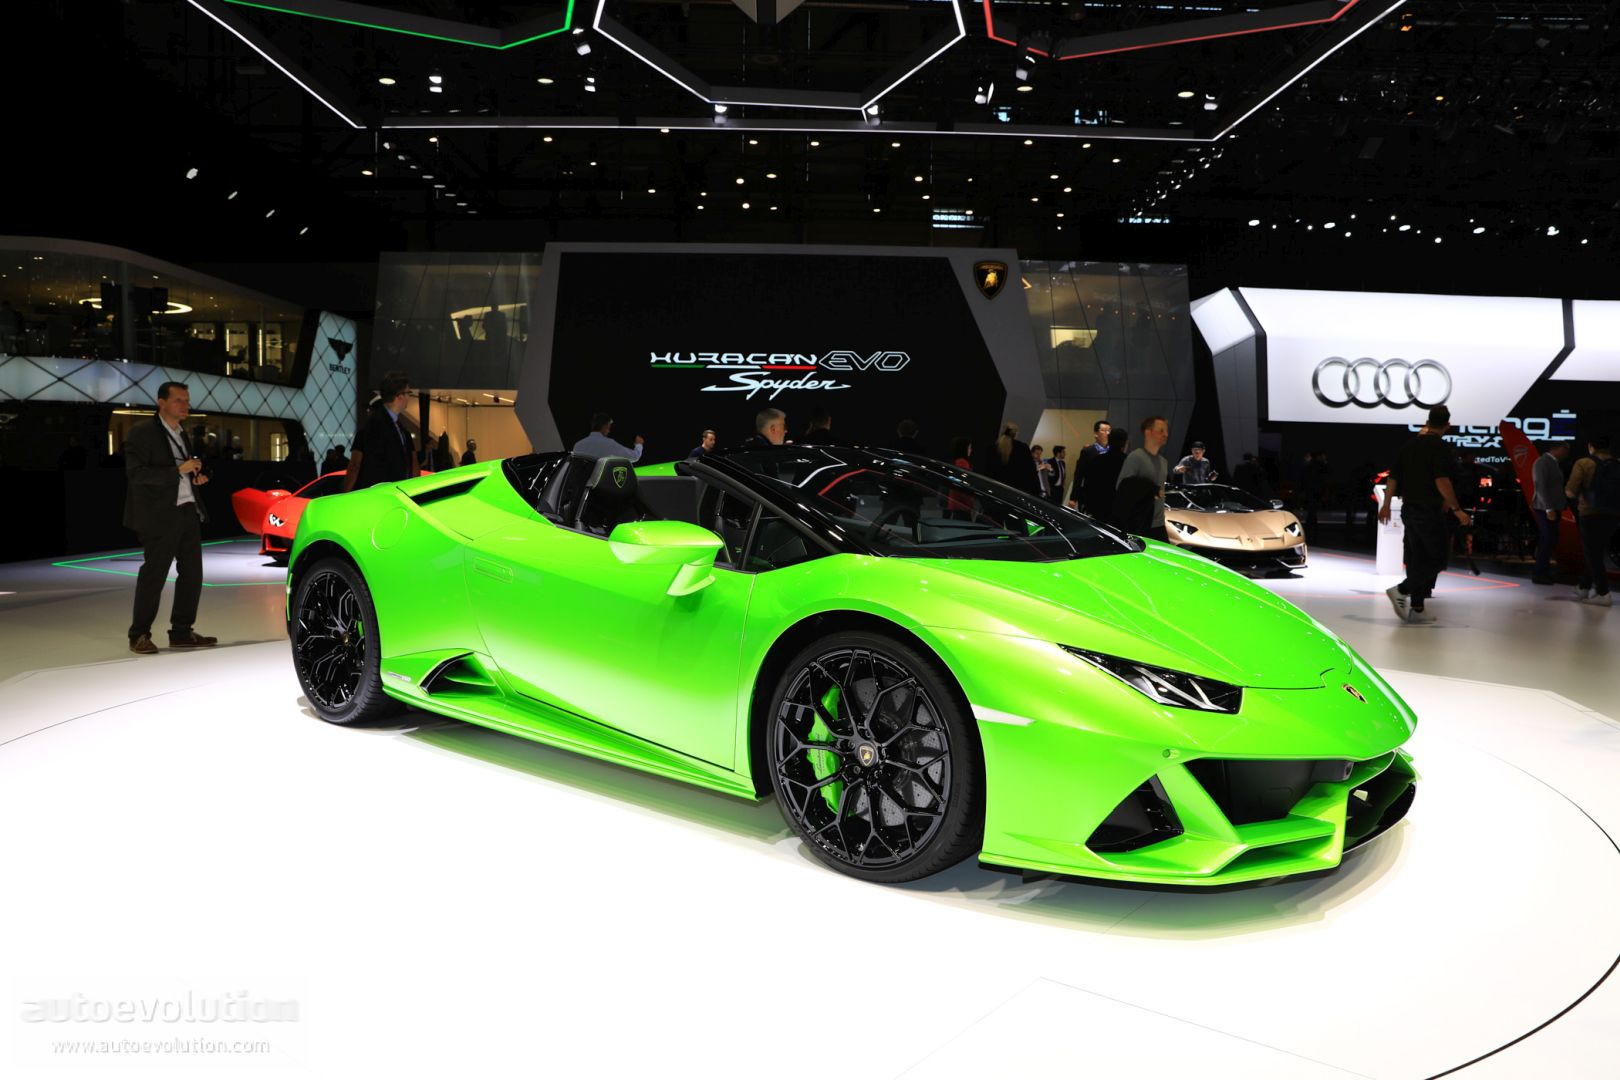 Lamborghini Huracan Evo Looks Wild In This Three Color Spec